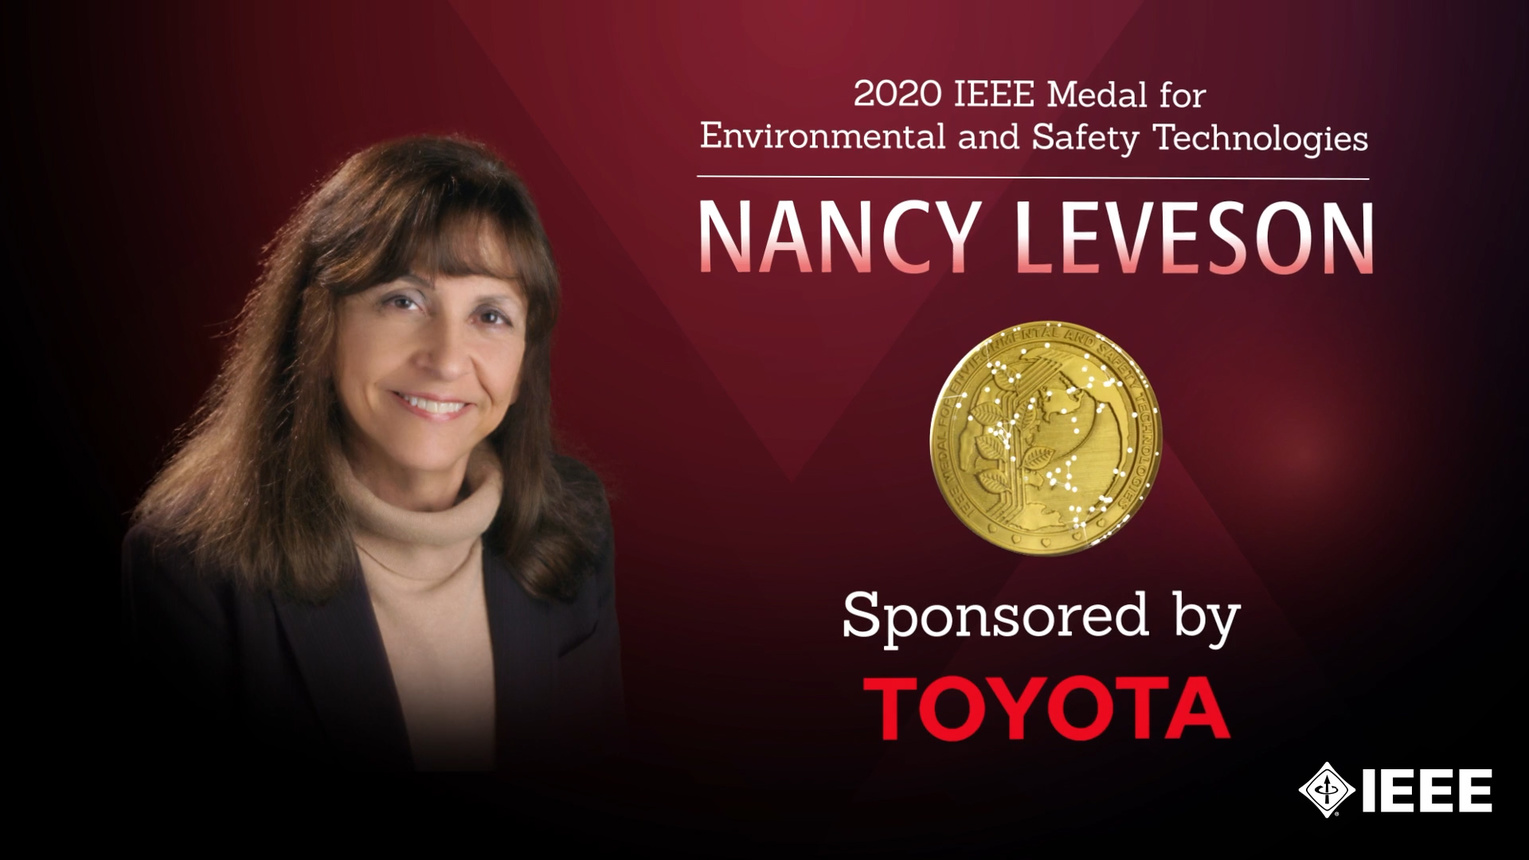 Honors 2020: Nancy Leveson Wins the IEEE Medal for Environmental & Safety Technologies